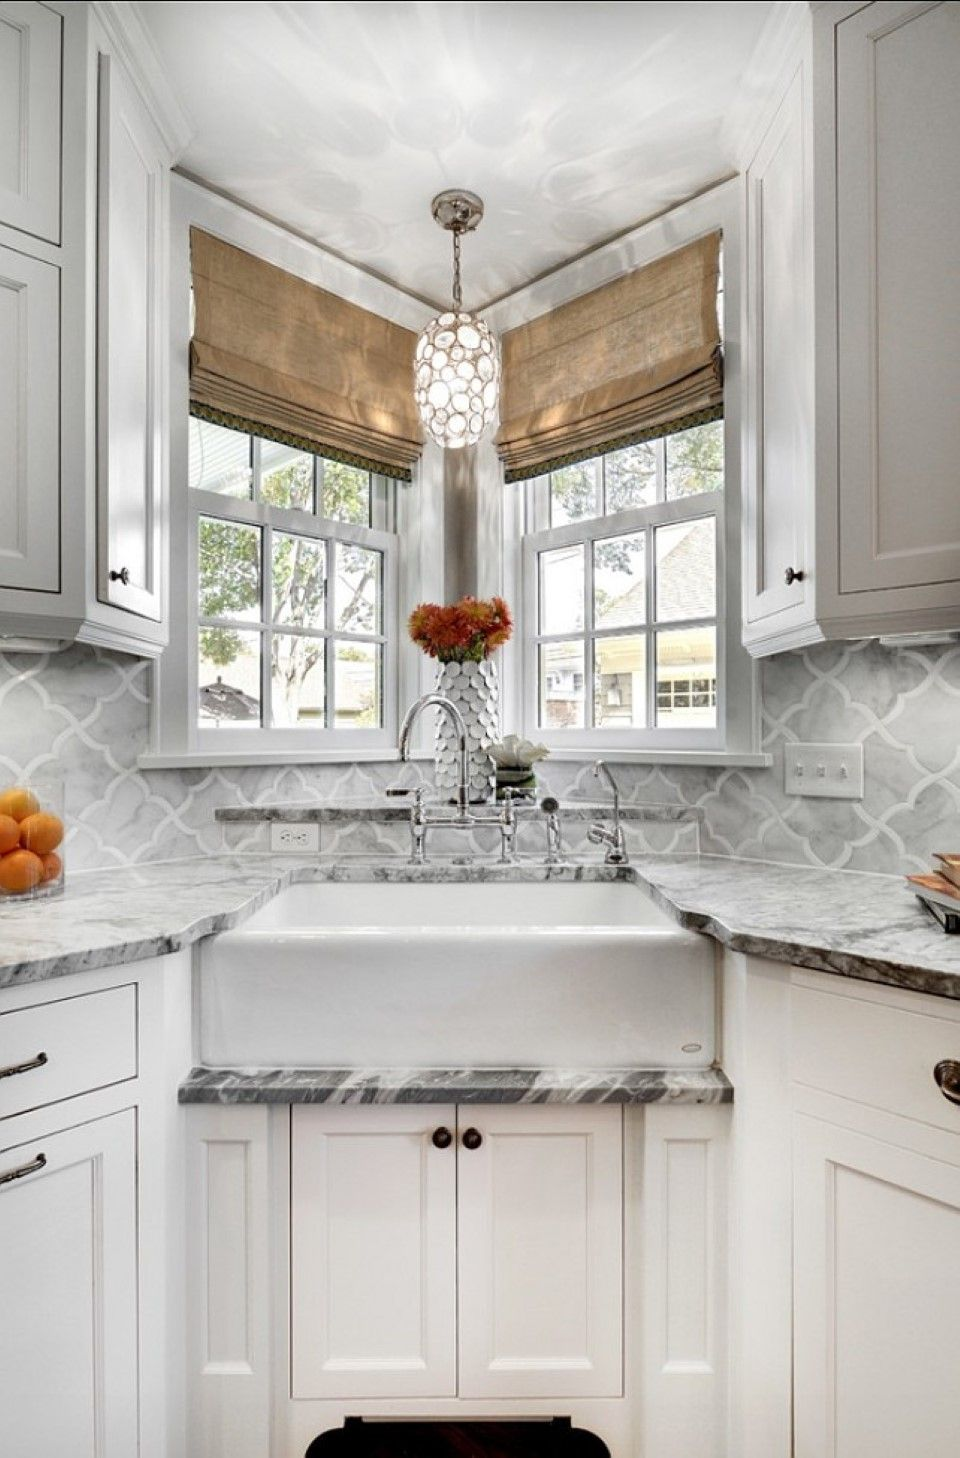 Brilliant Kitchen Sink Window Treatment Ideas Google Search 3 Home Interior And Landscaping Oversignezvosmurscom